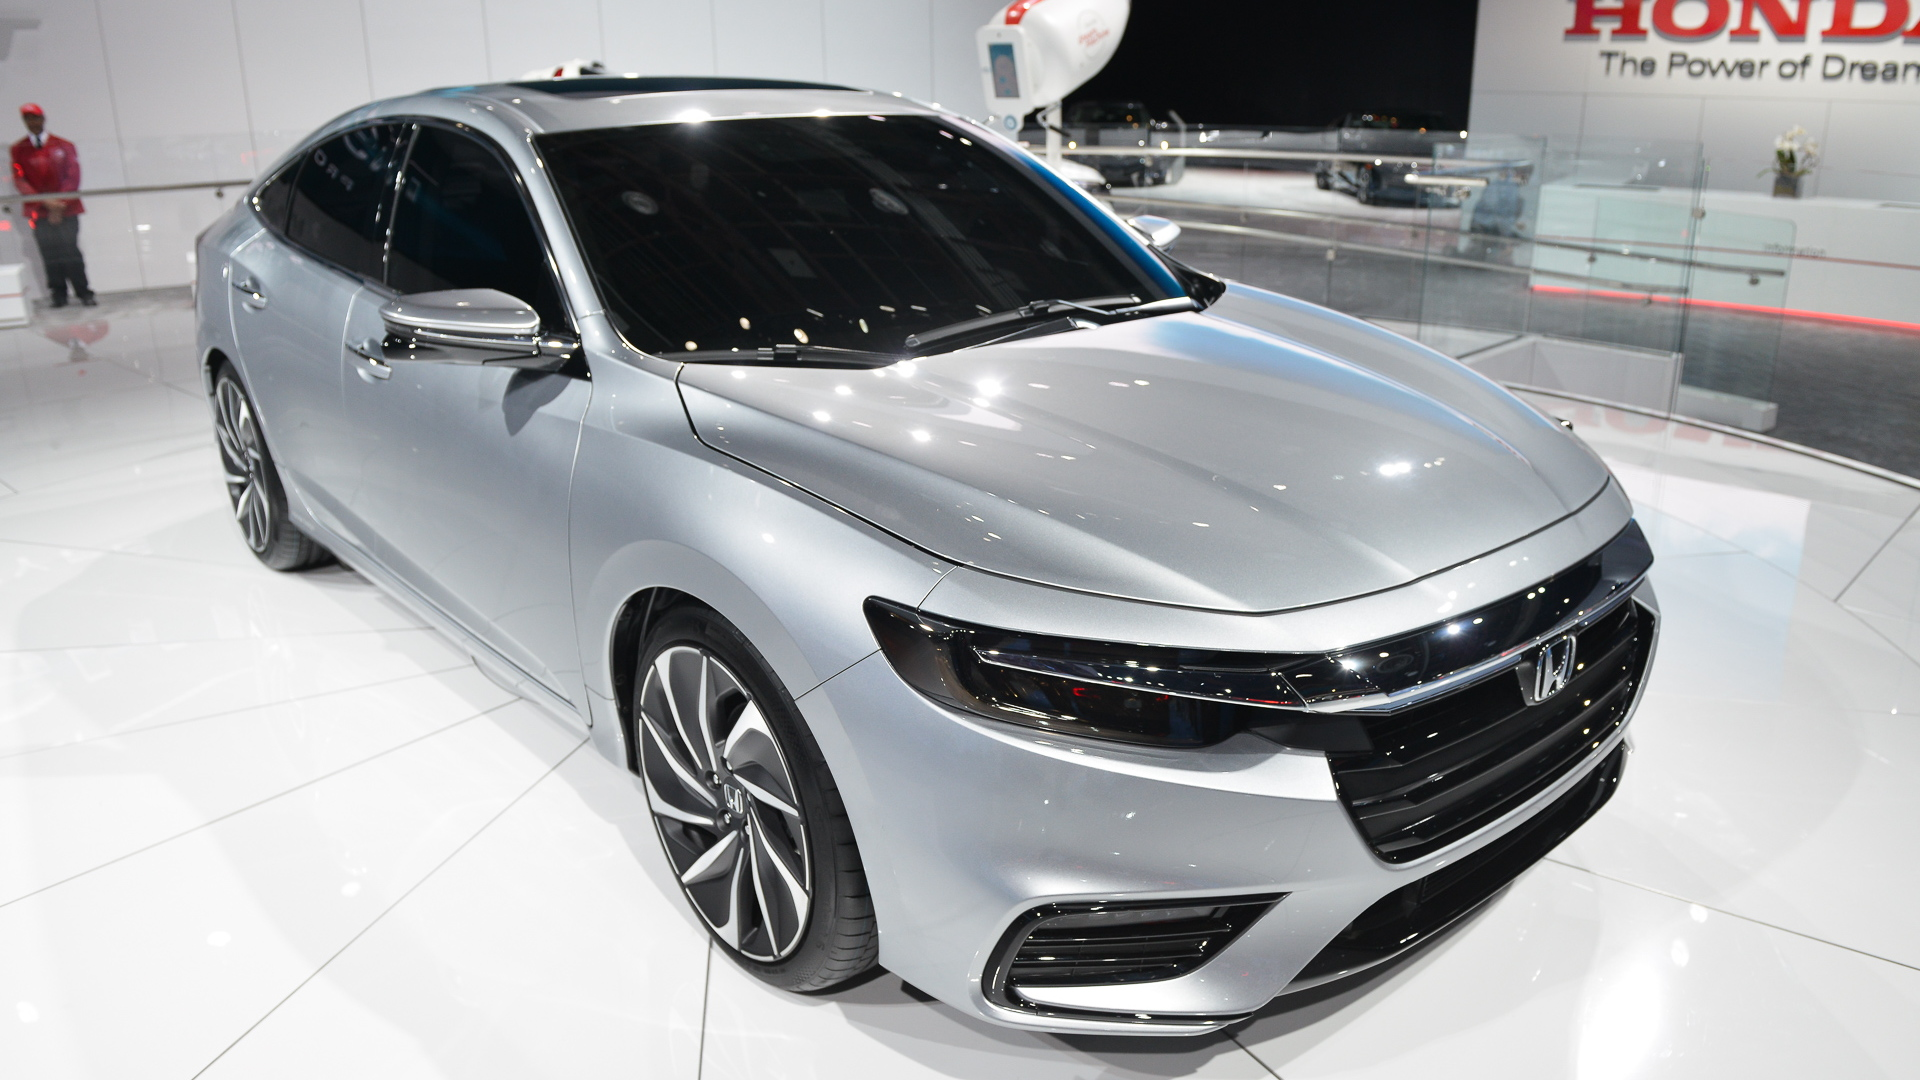 Honda Insight Prototype, 2018 Detroit auto show